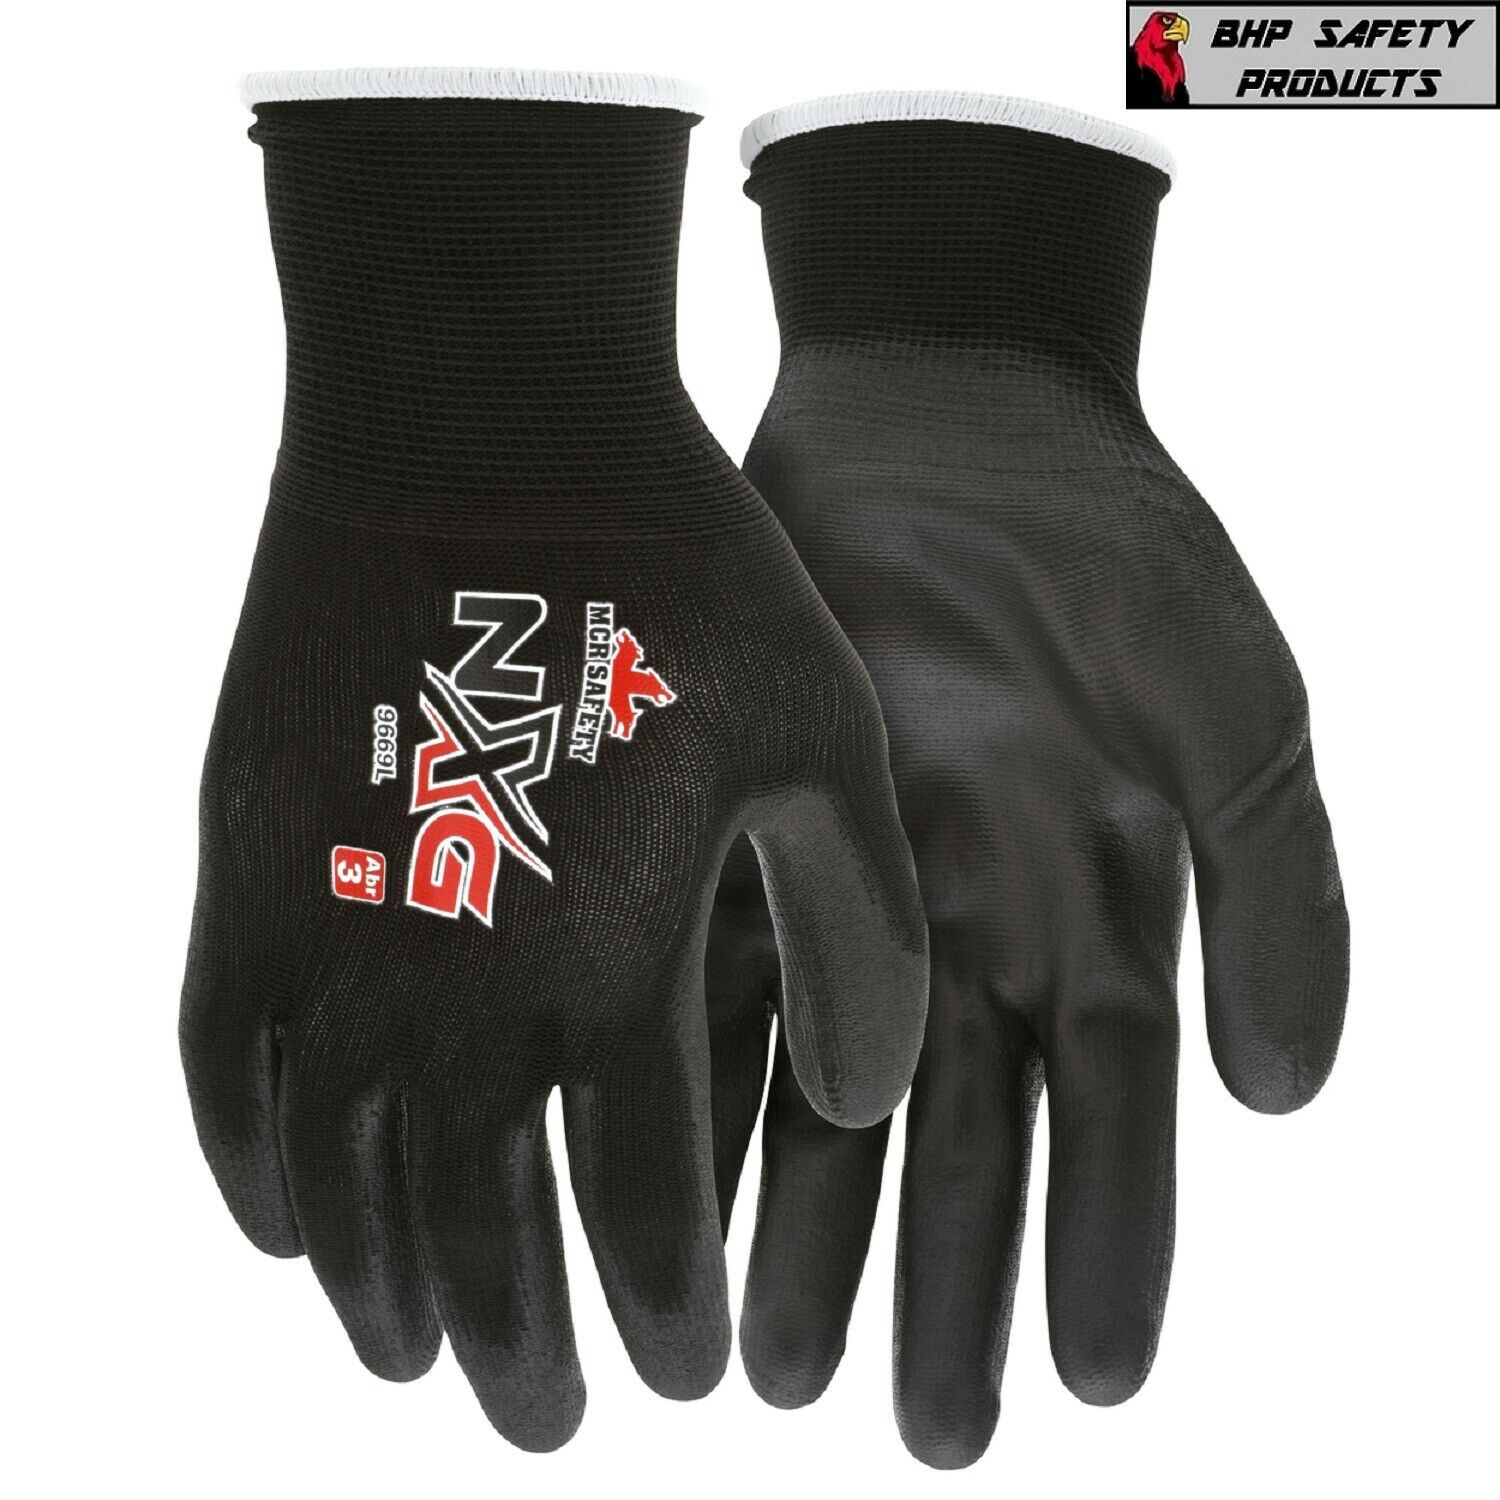 MCR Safety Polyurethane Coated Nylon Work Gloves, 13 Gauge